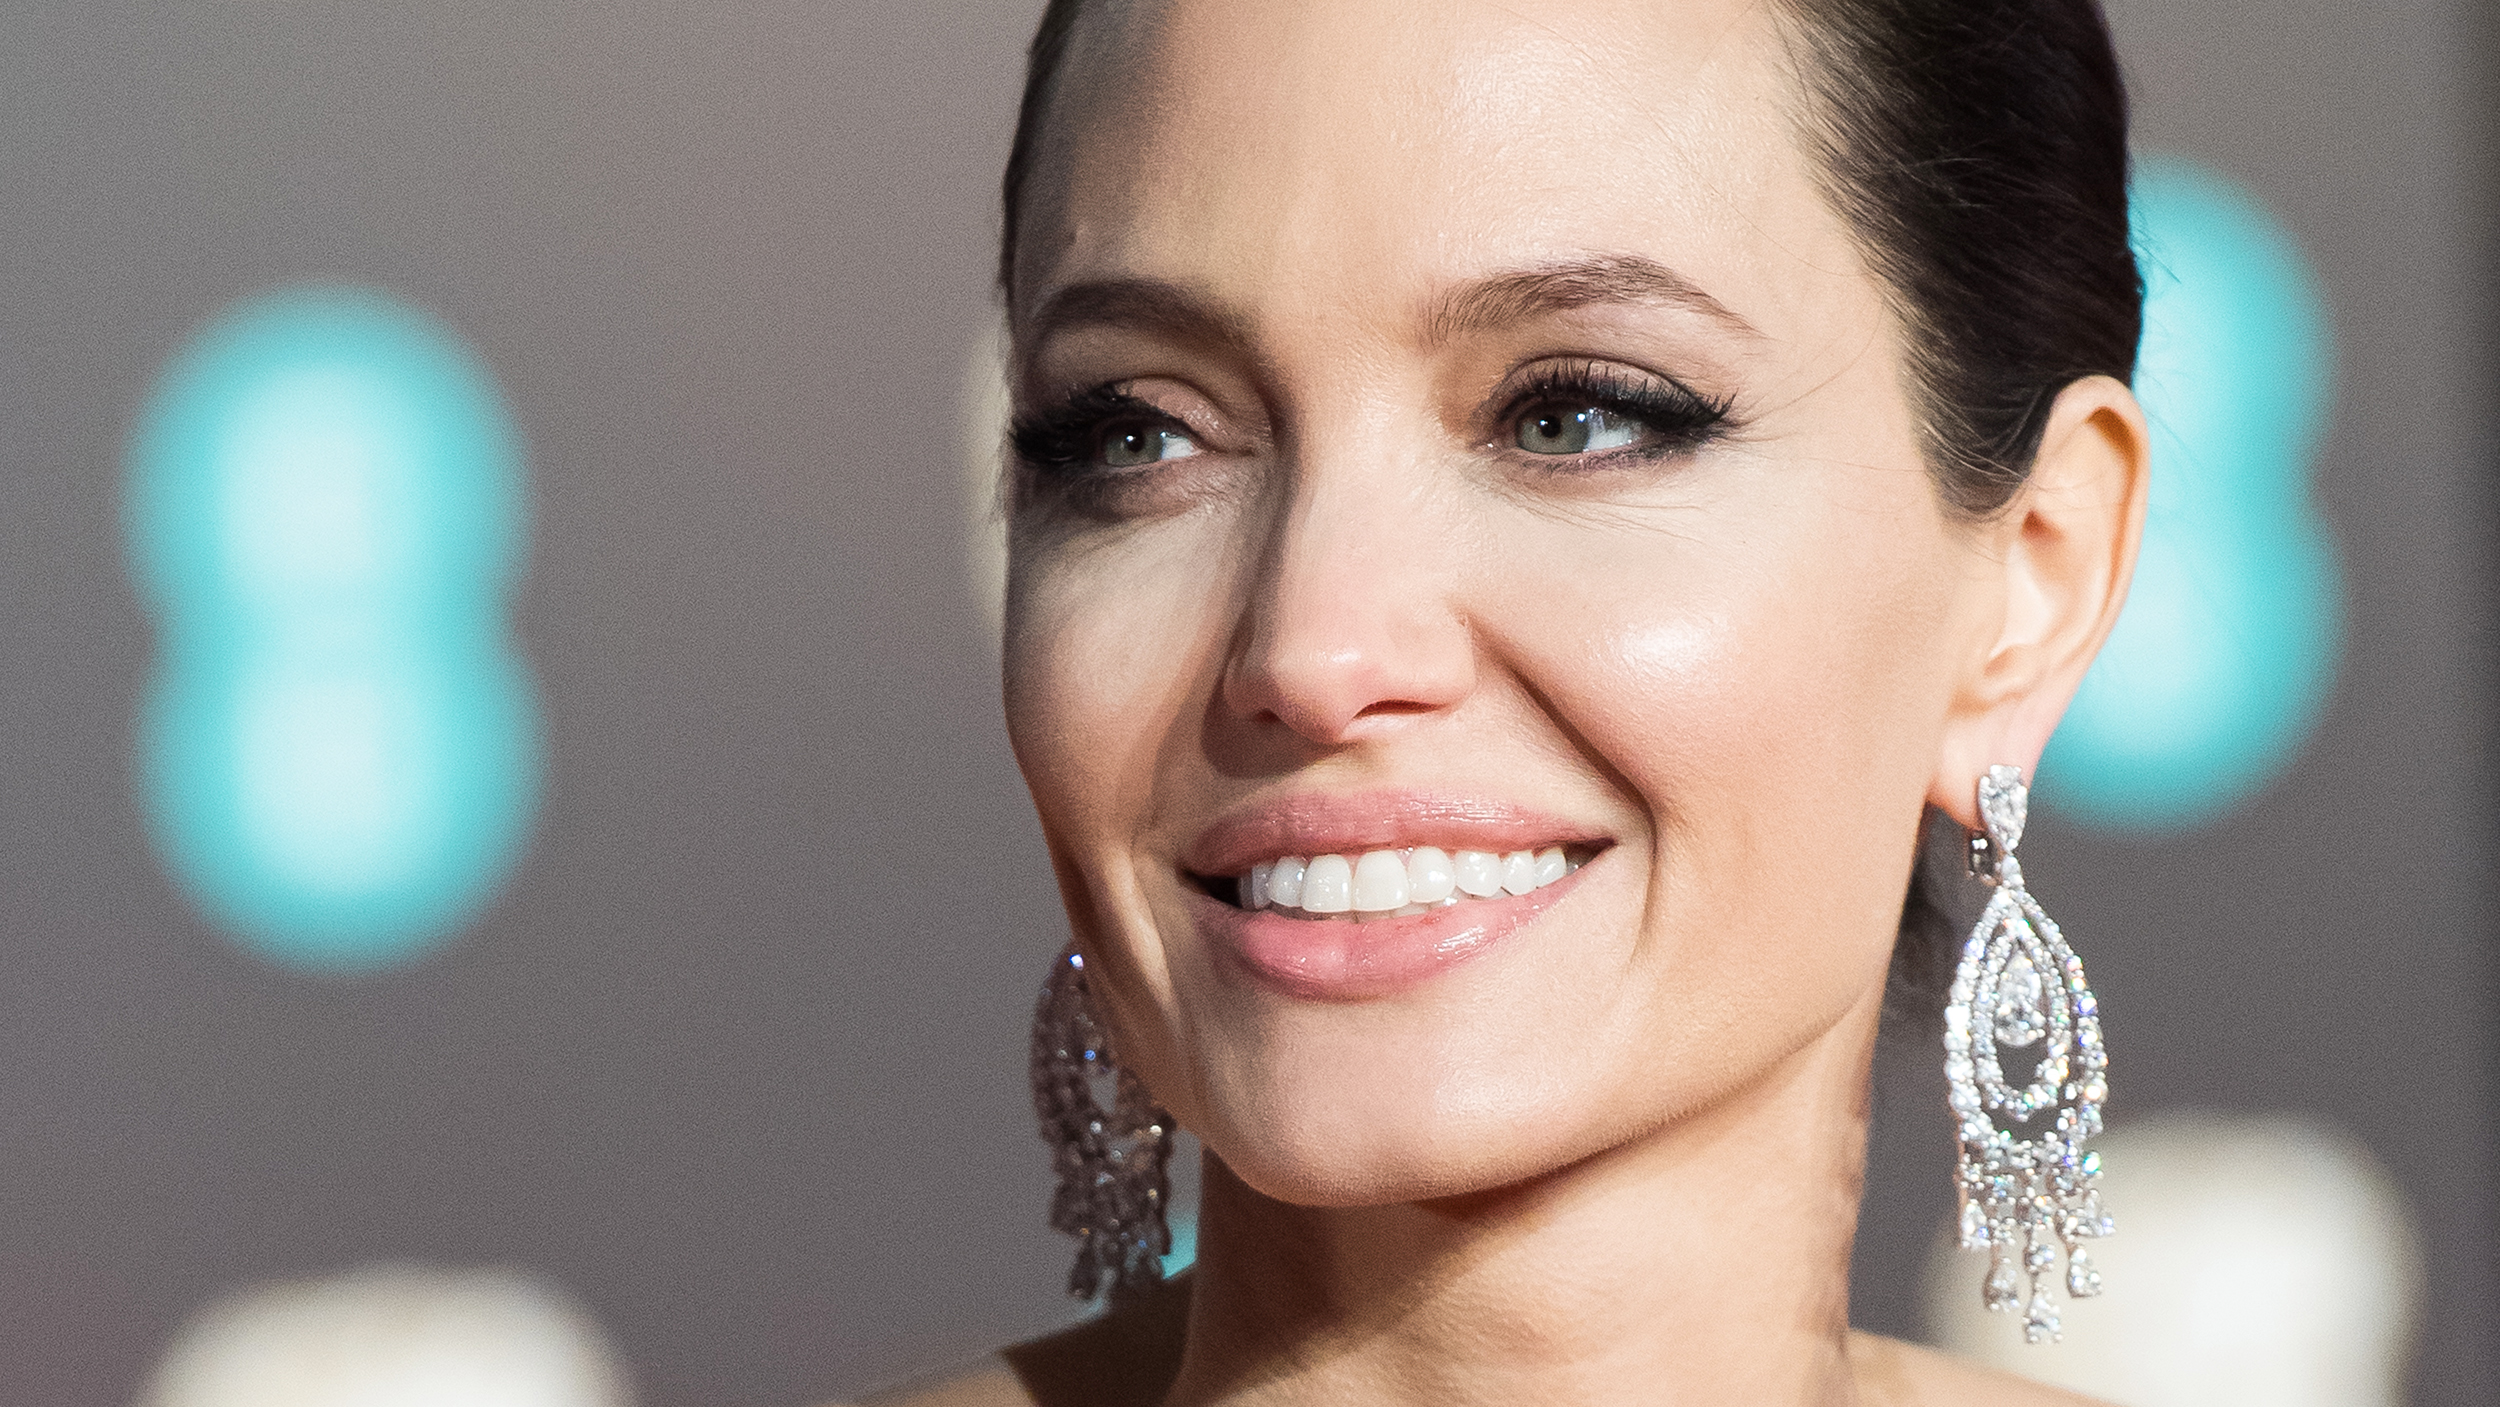 Angelina Jolie News: Angelina Jolie Talks Aging And Beauty Mistakes With